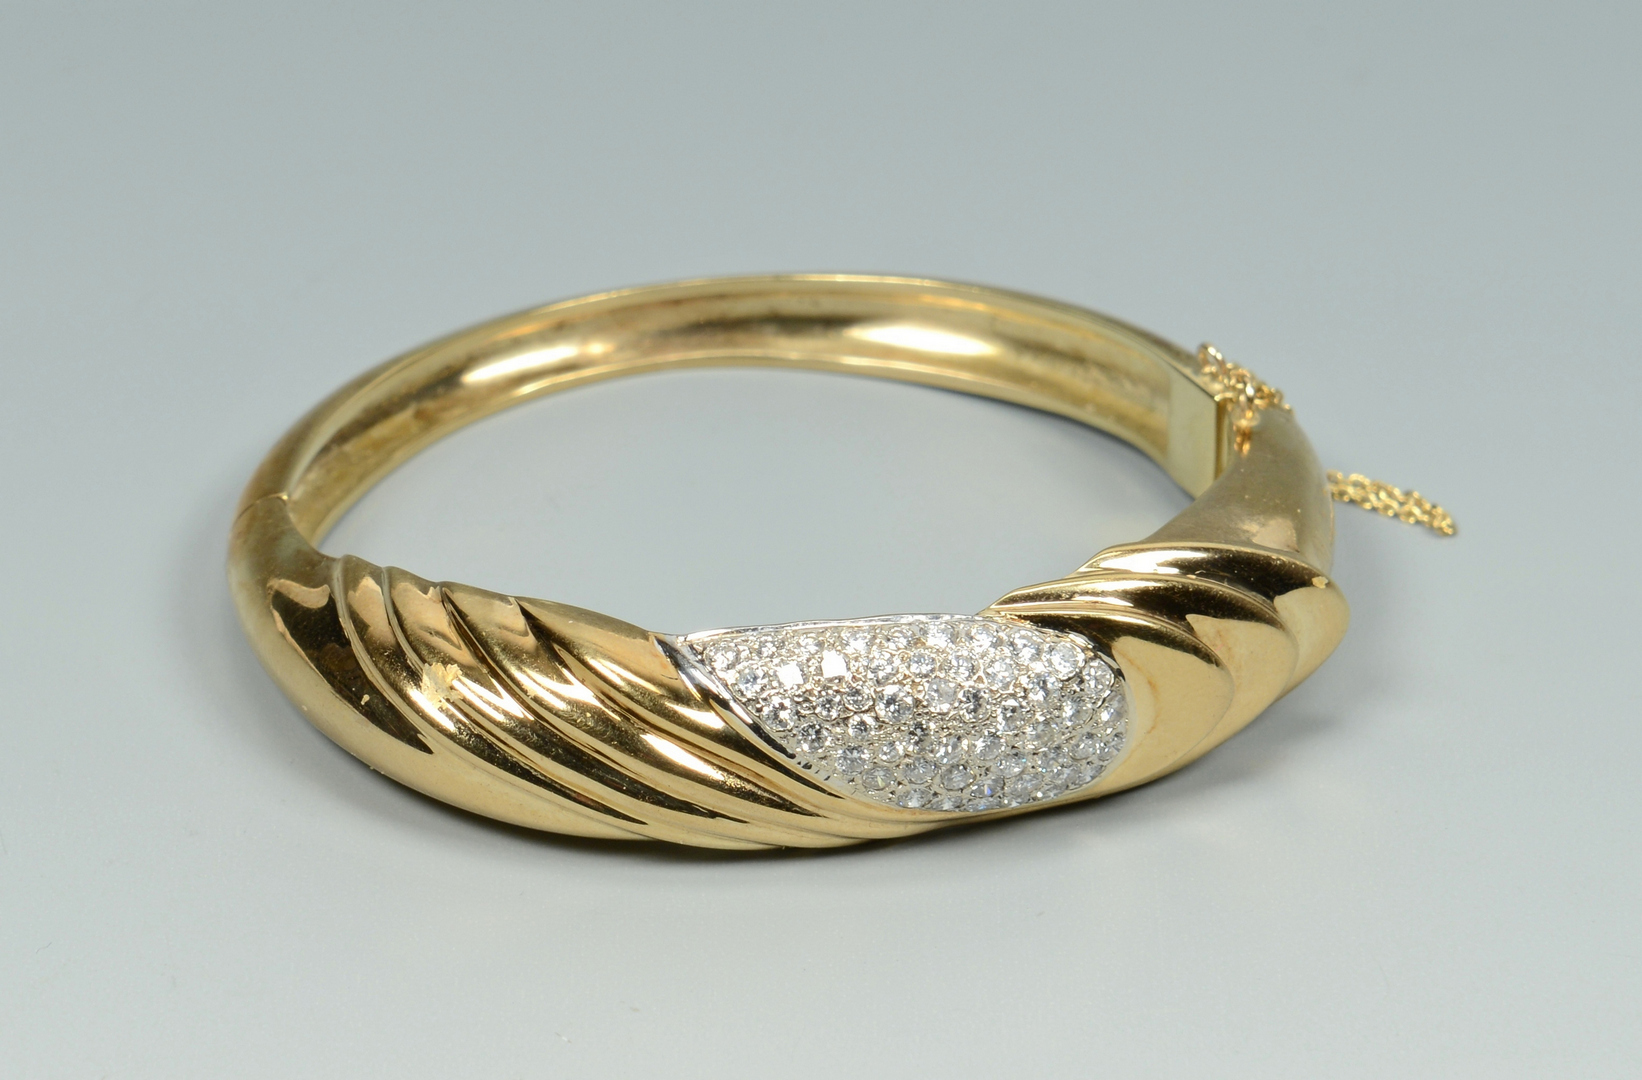 Lot 3088049: 14k Diamond Bangle Bracelet